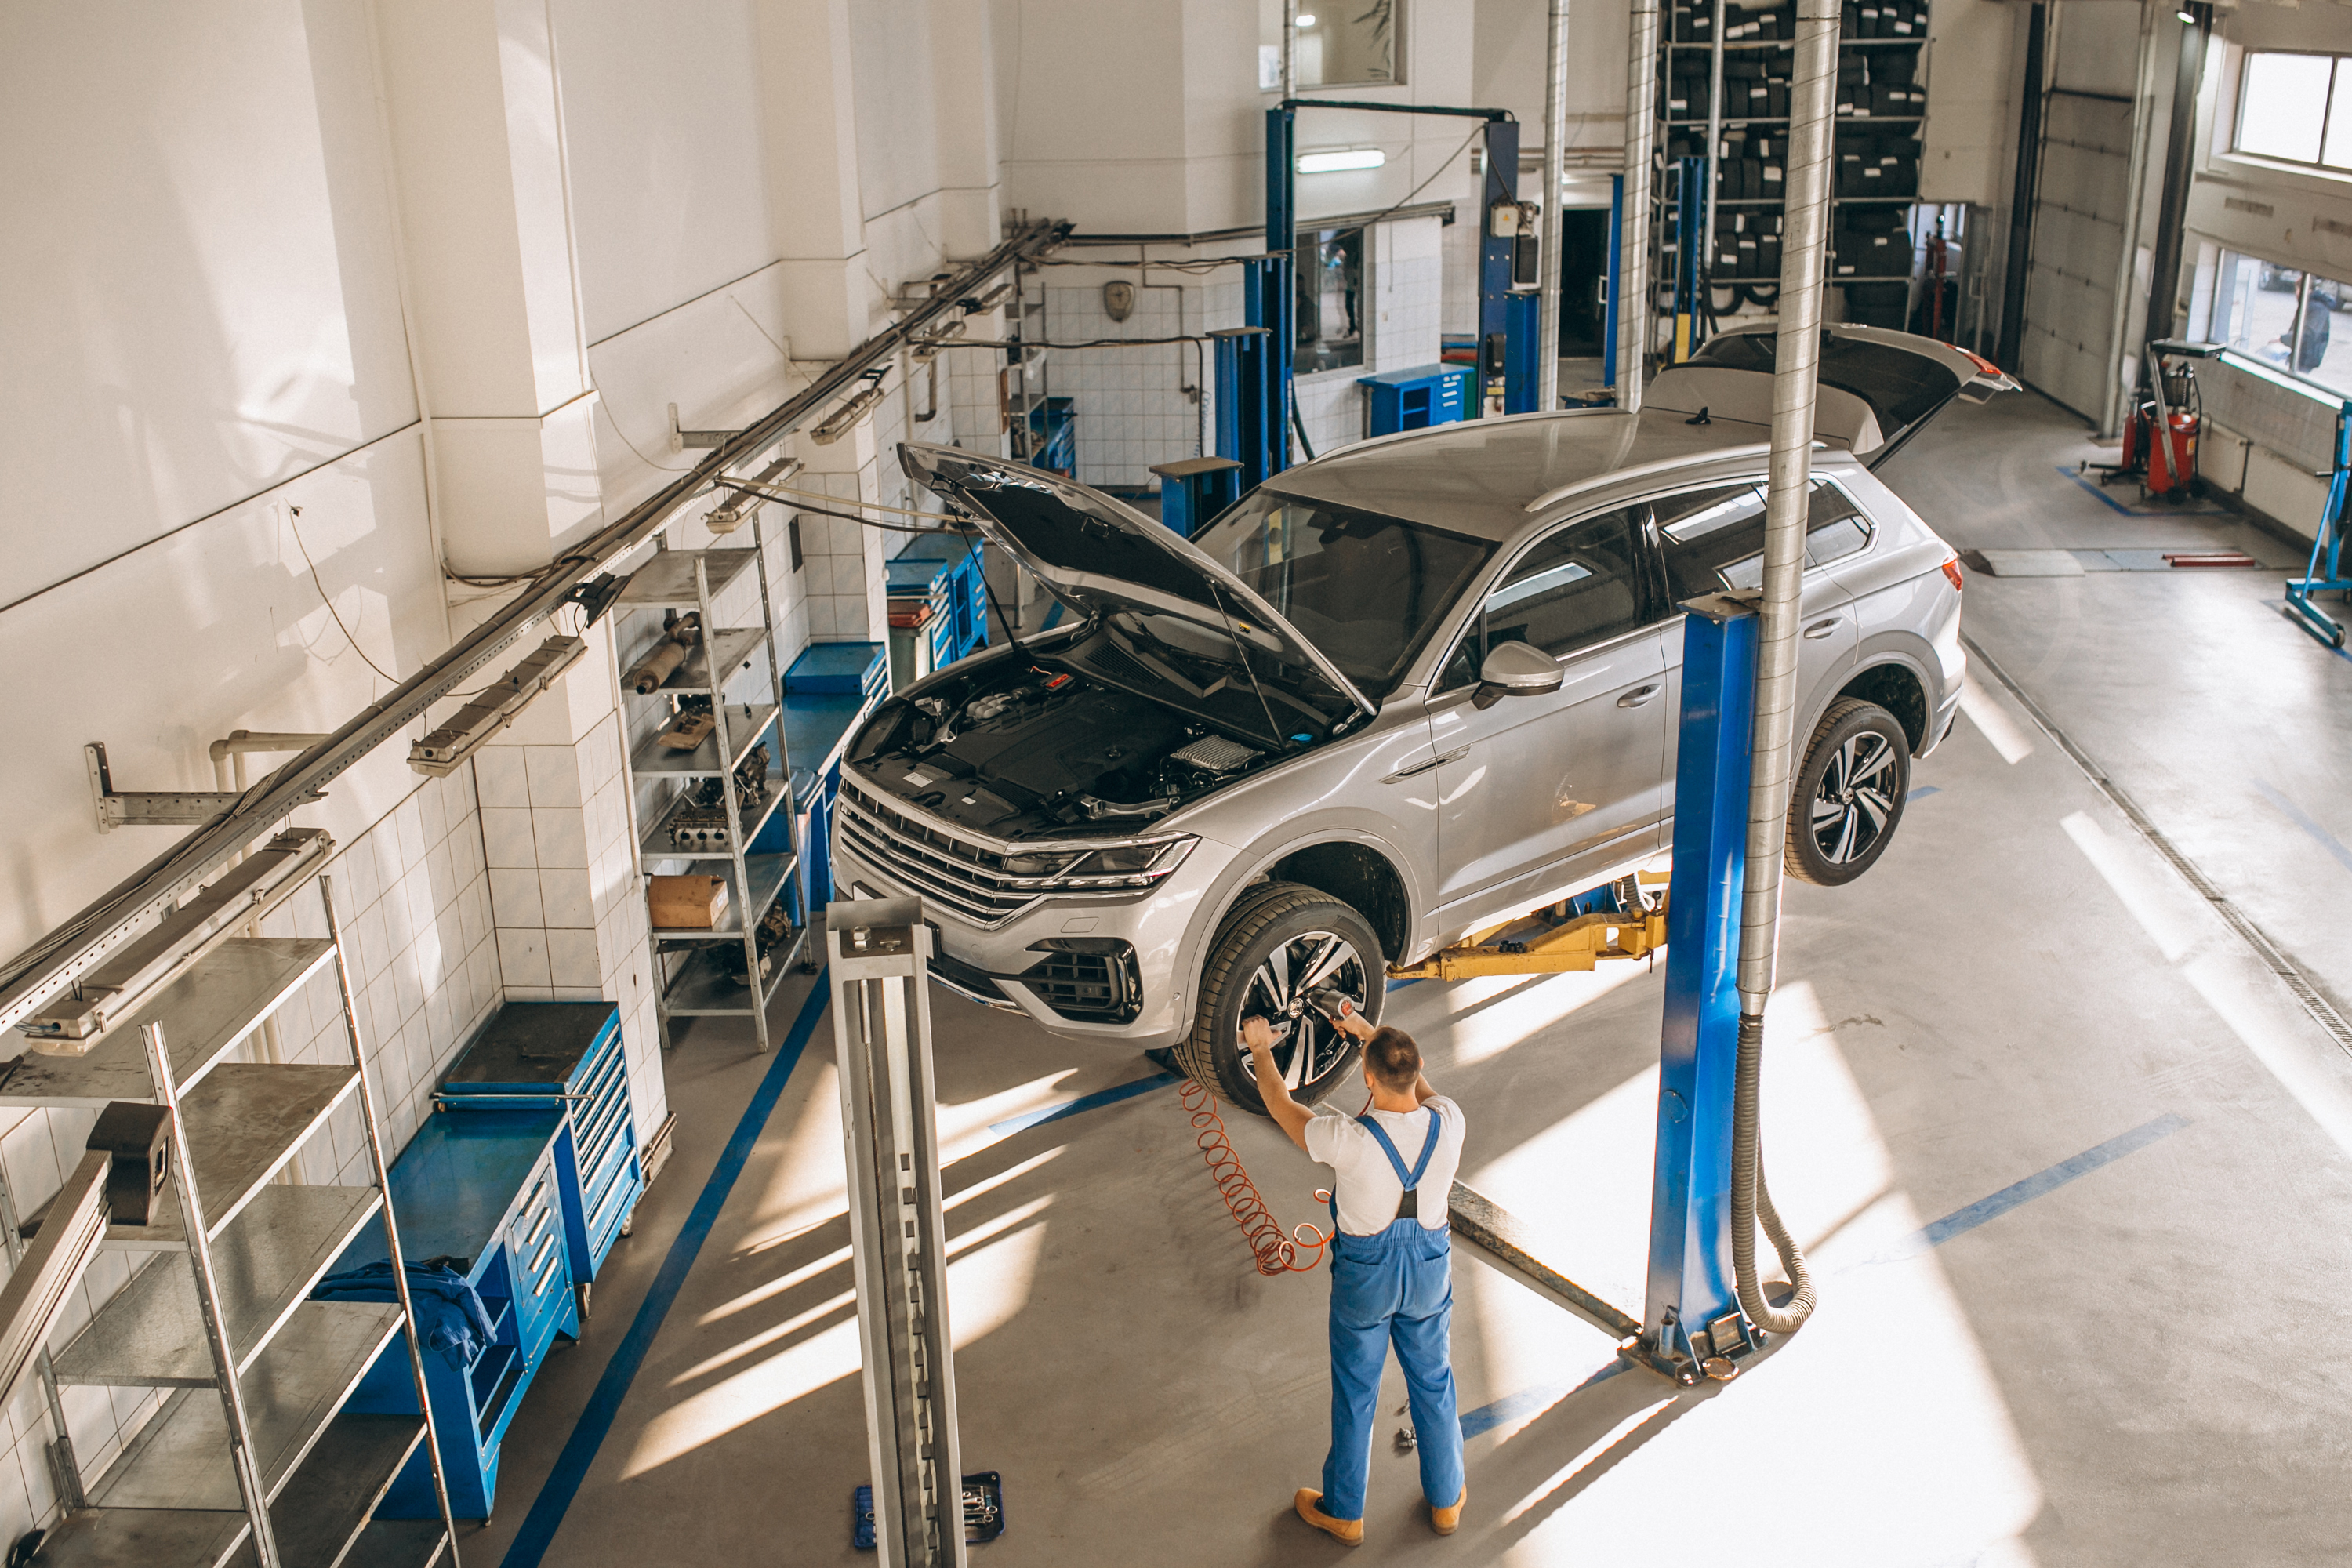 How COVID-19 has affected the automotive industry